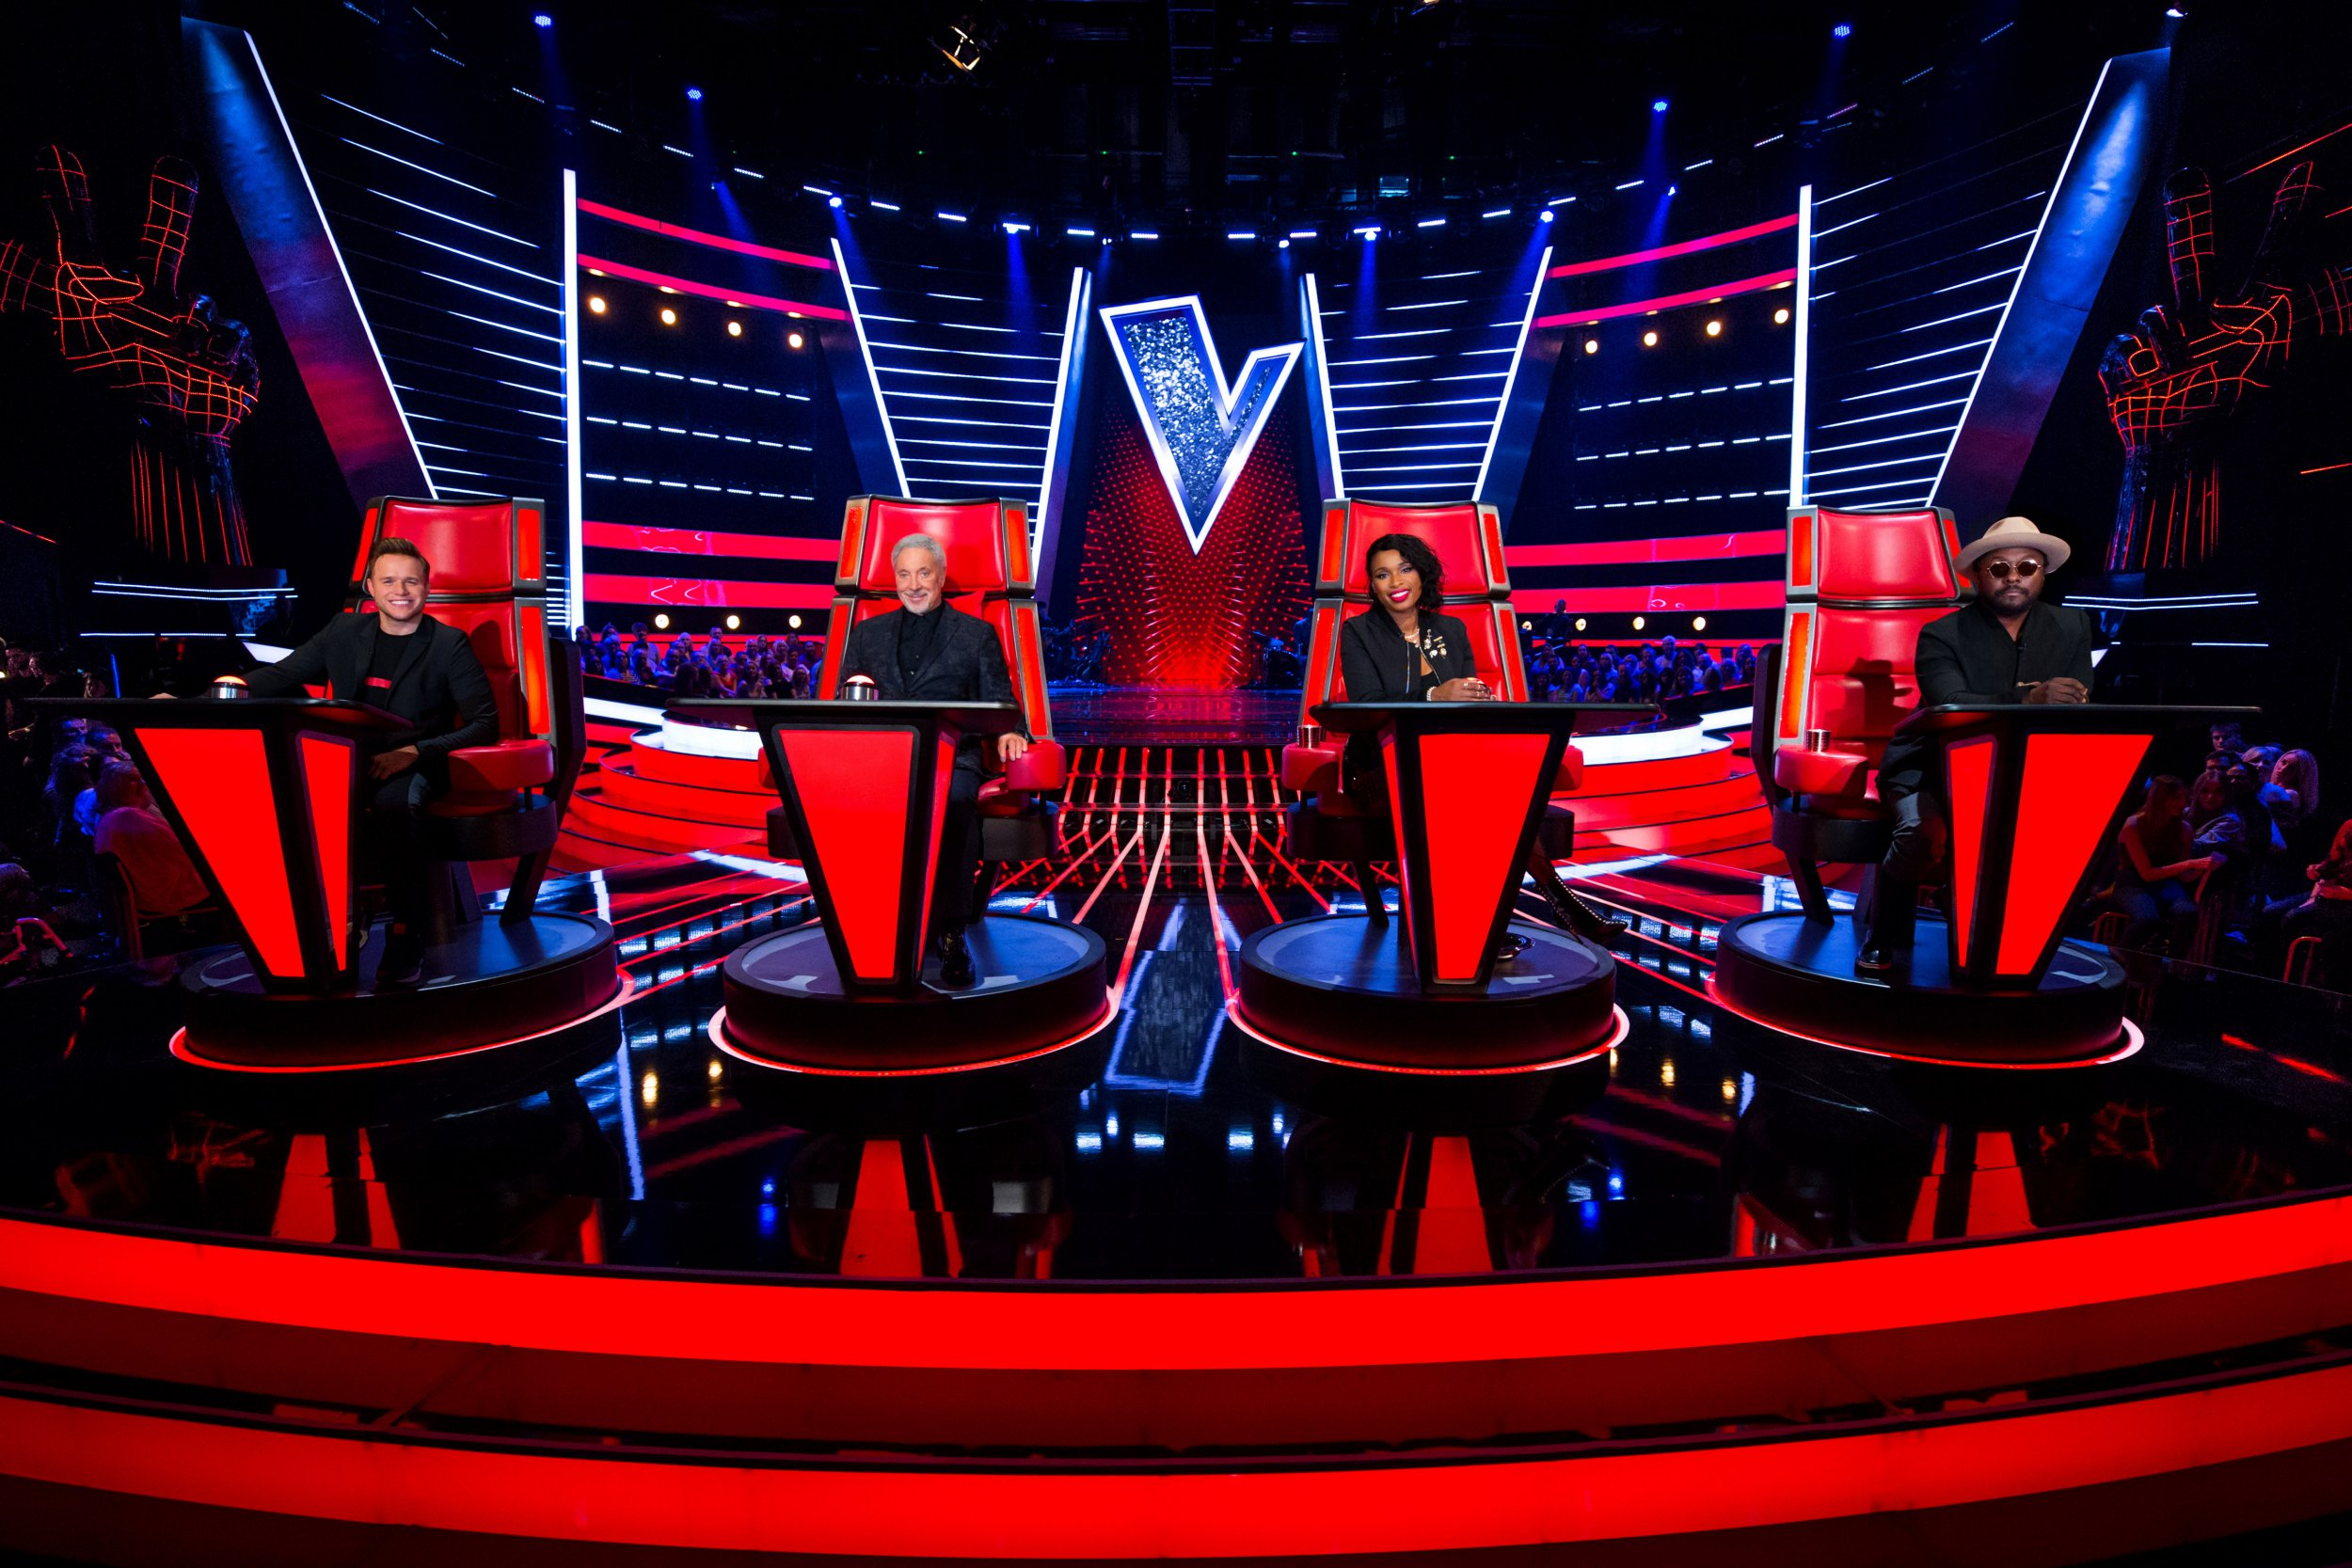 When is The Voice UK back on ITV and who will be the judges?